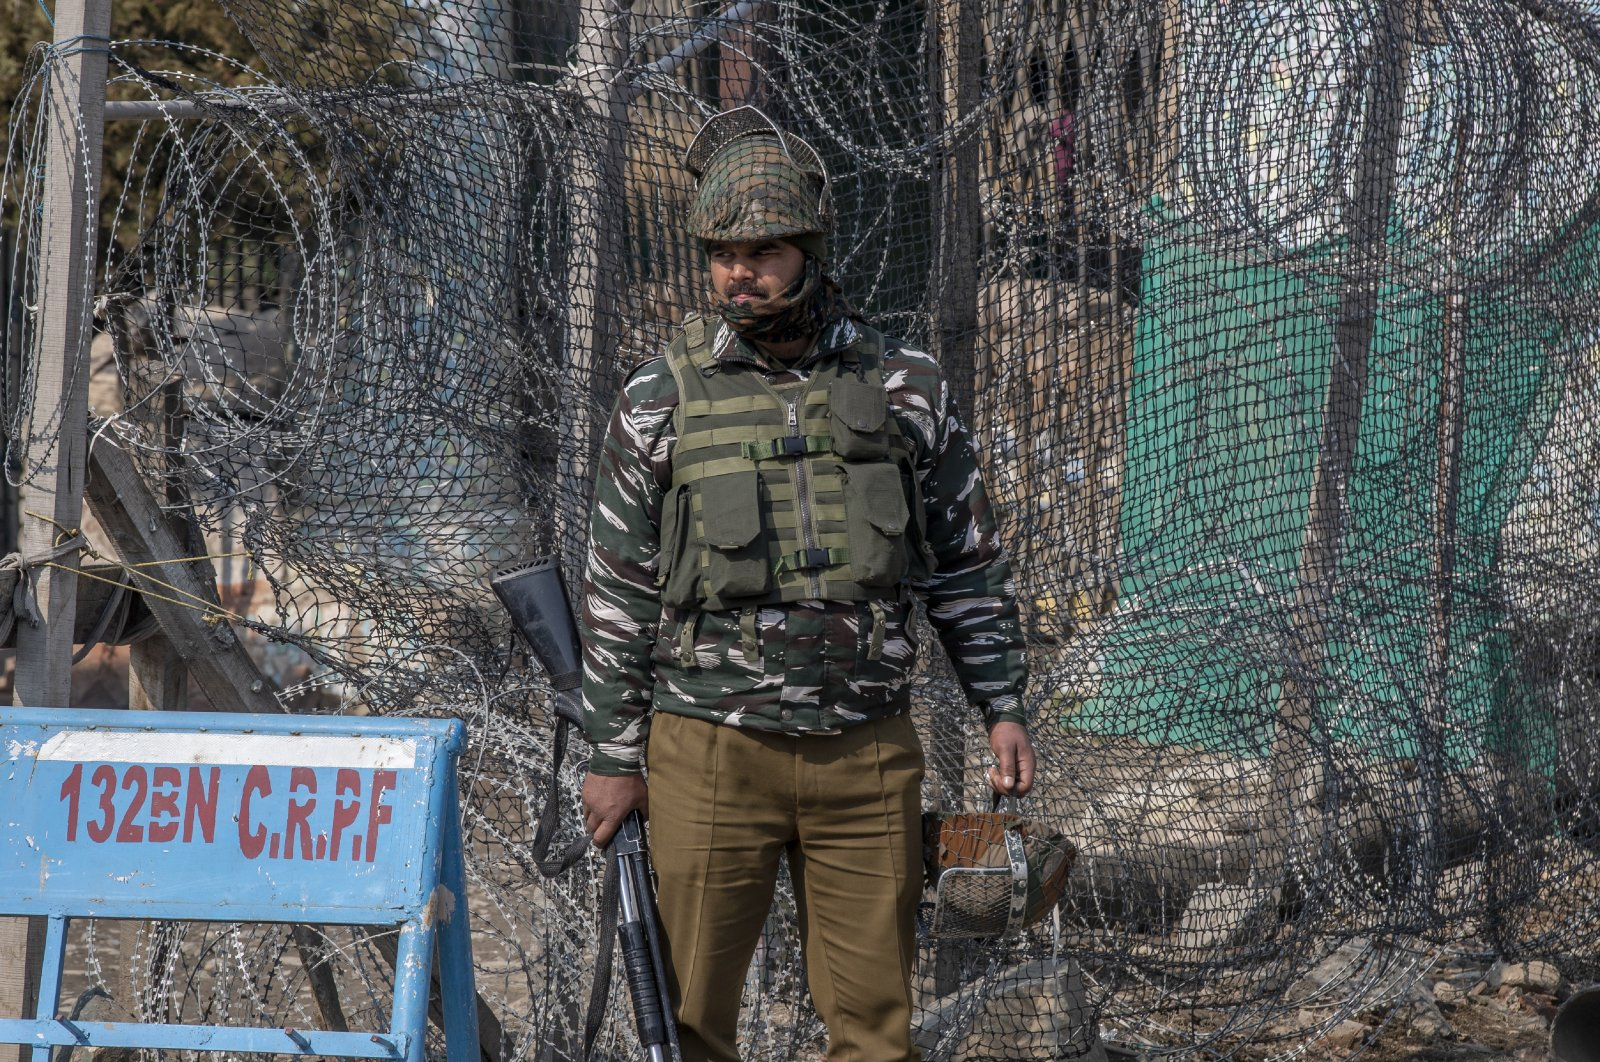 An Indian paramilitary soldier stands guard outside a paramilitary post during a strike to mark the anniversary of Kashmiri leader Maqbool Bhat's death in Srinagar, Indian controlled Kashmir, Feb. 11, 2021. (AP Photo)